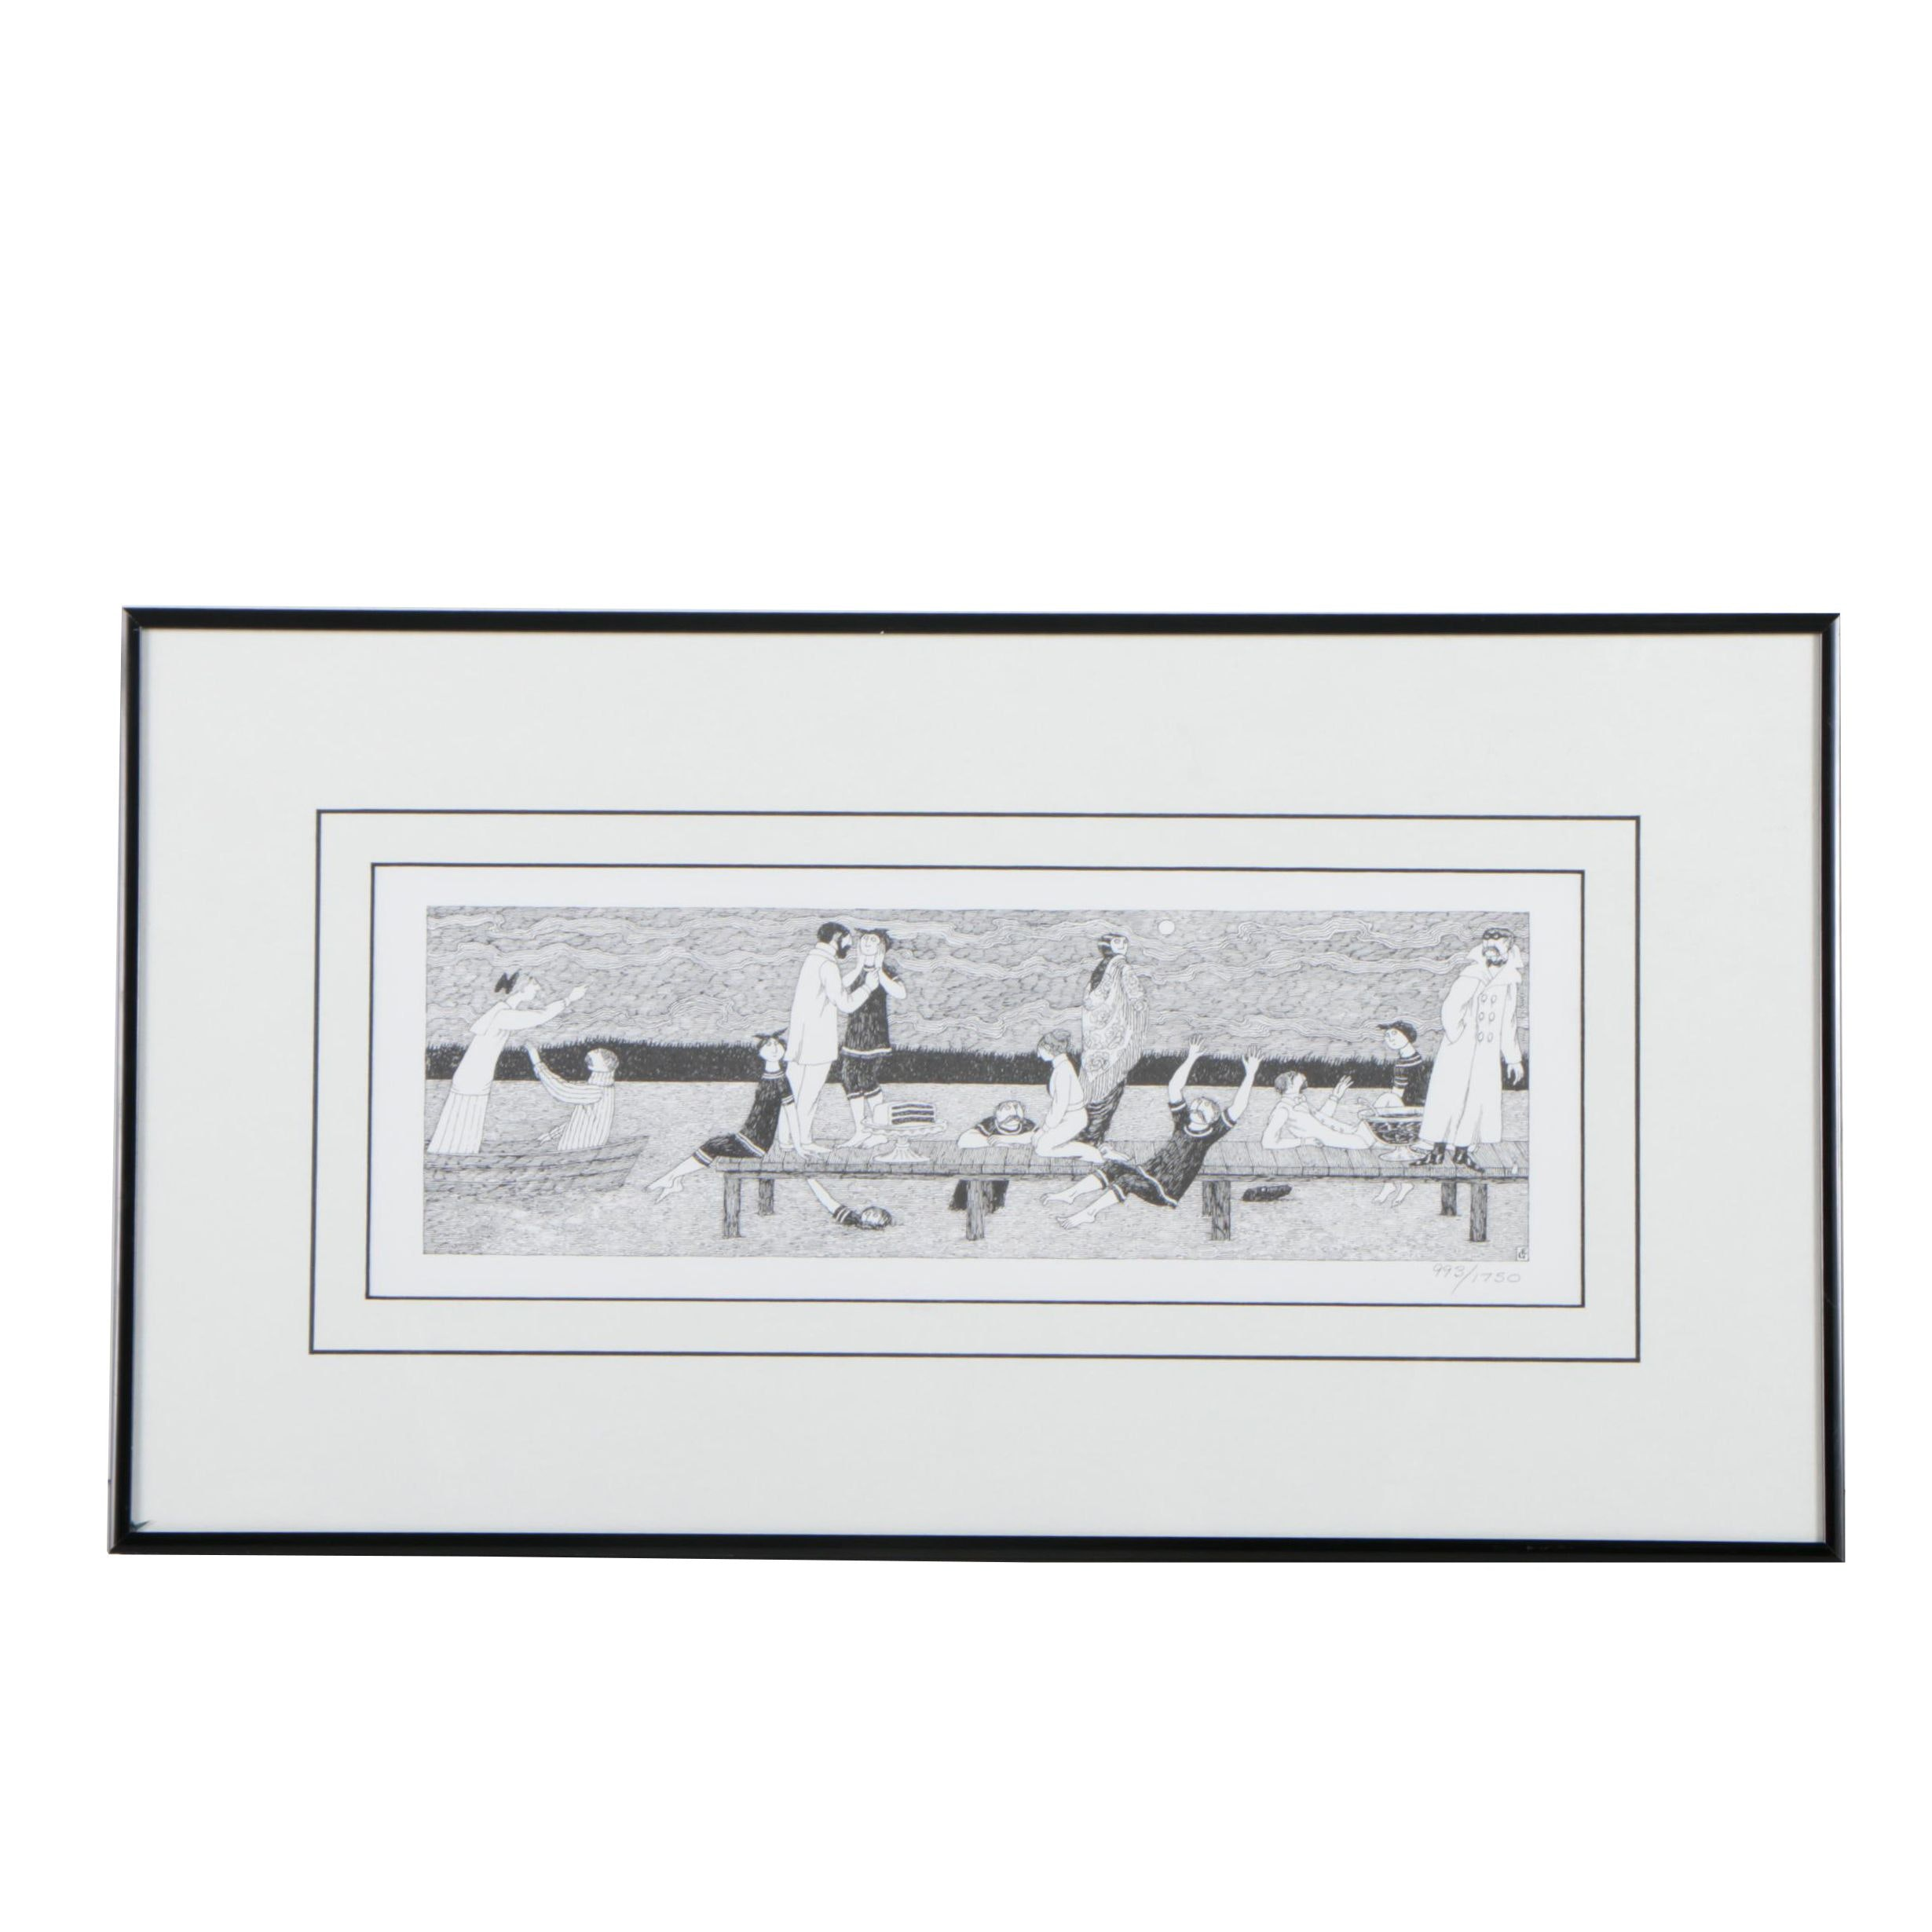 Limited Edition Lithograph after Edward Gorey